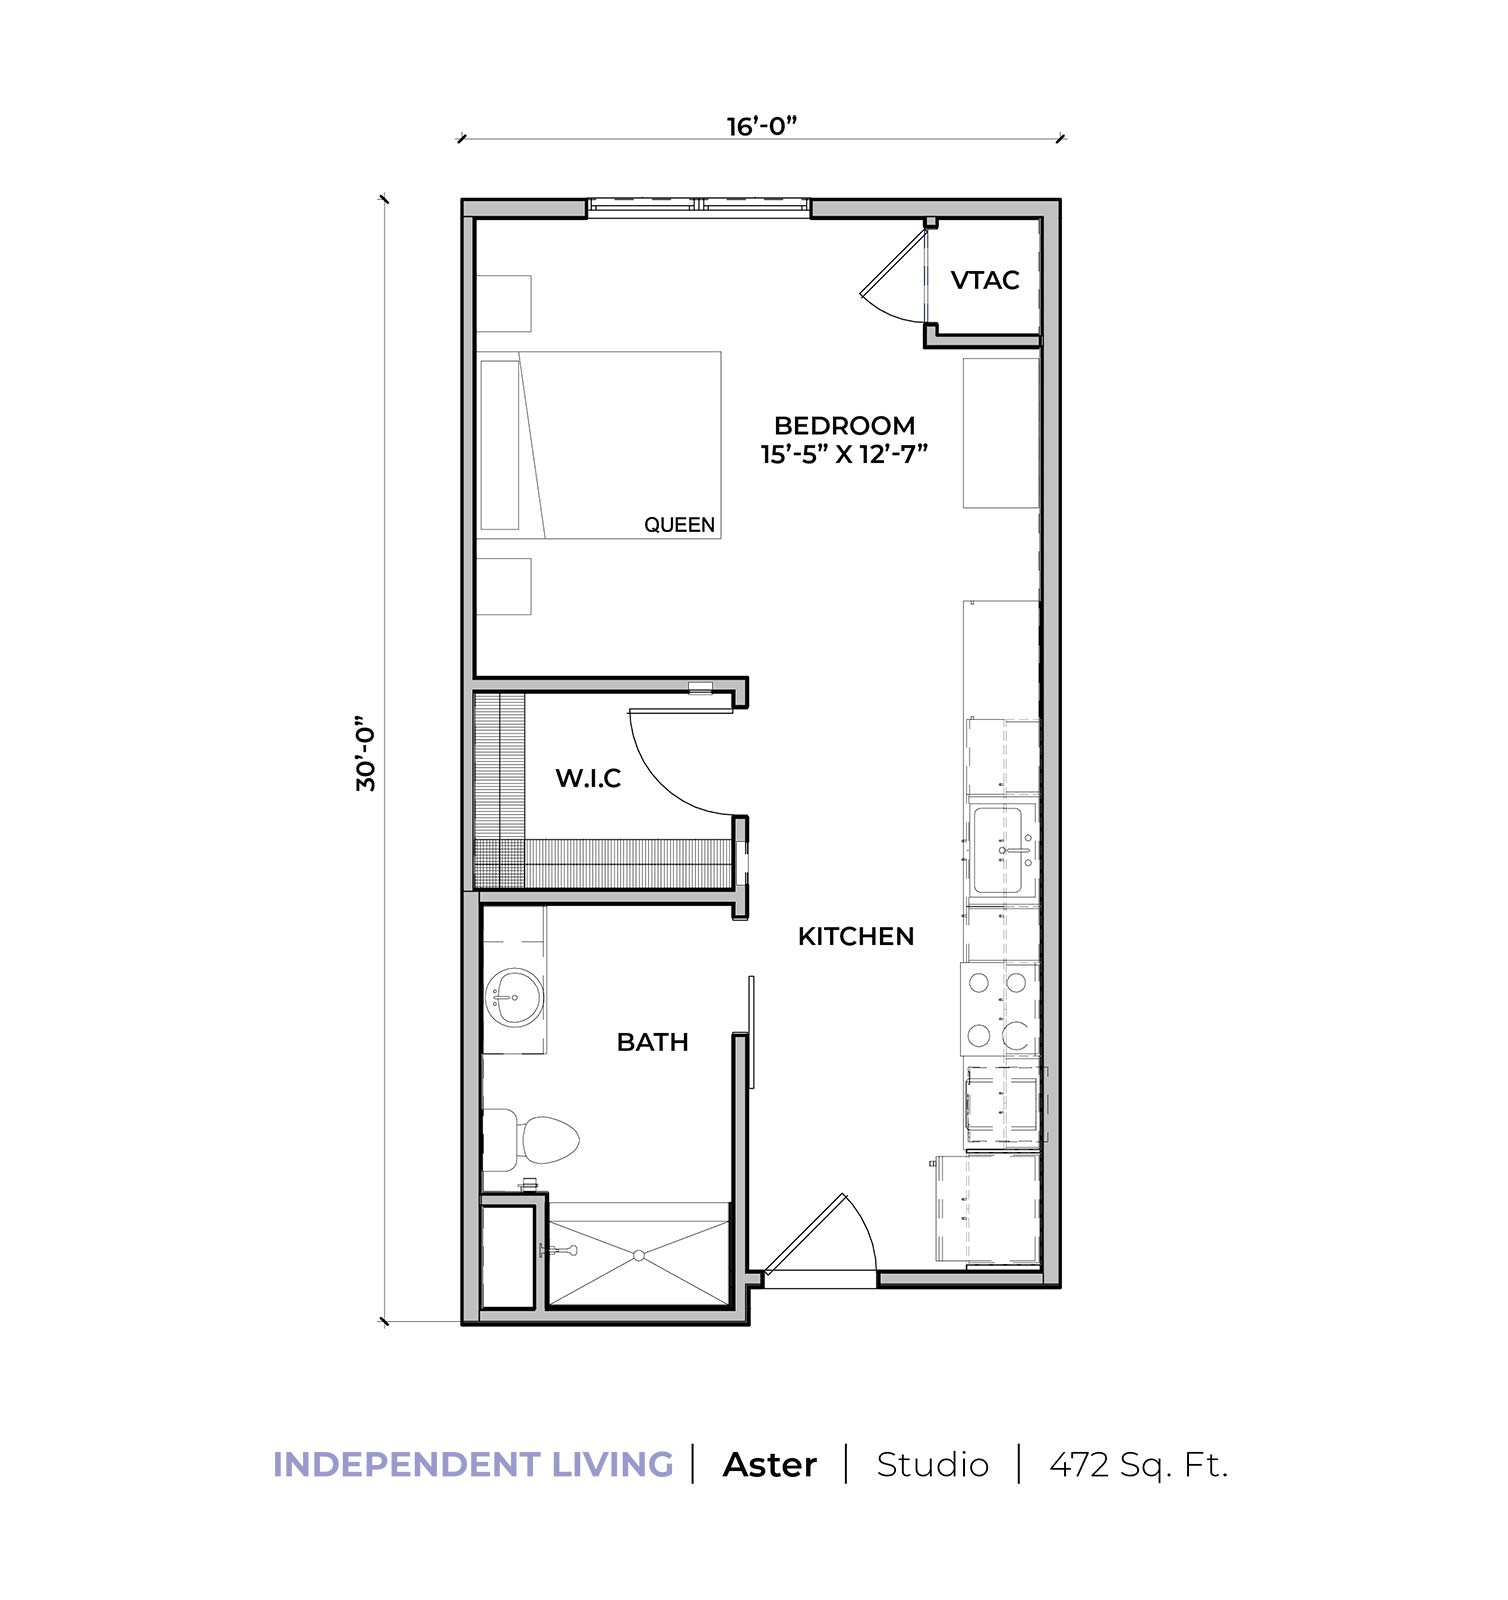 Independent living Aster studio apartment floor plan